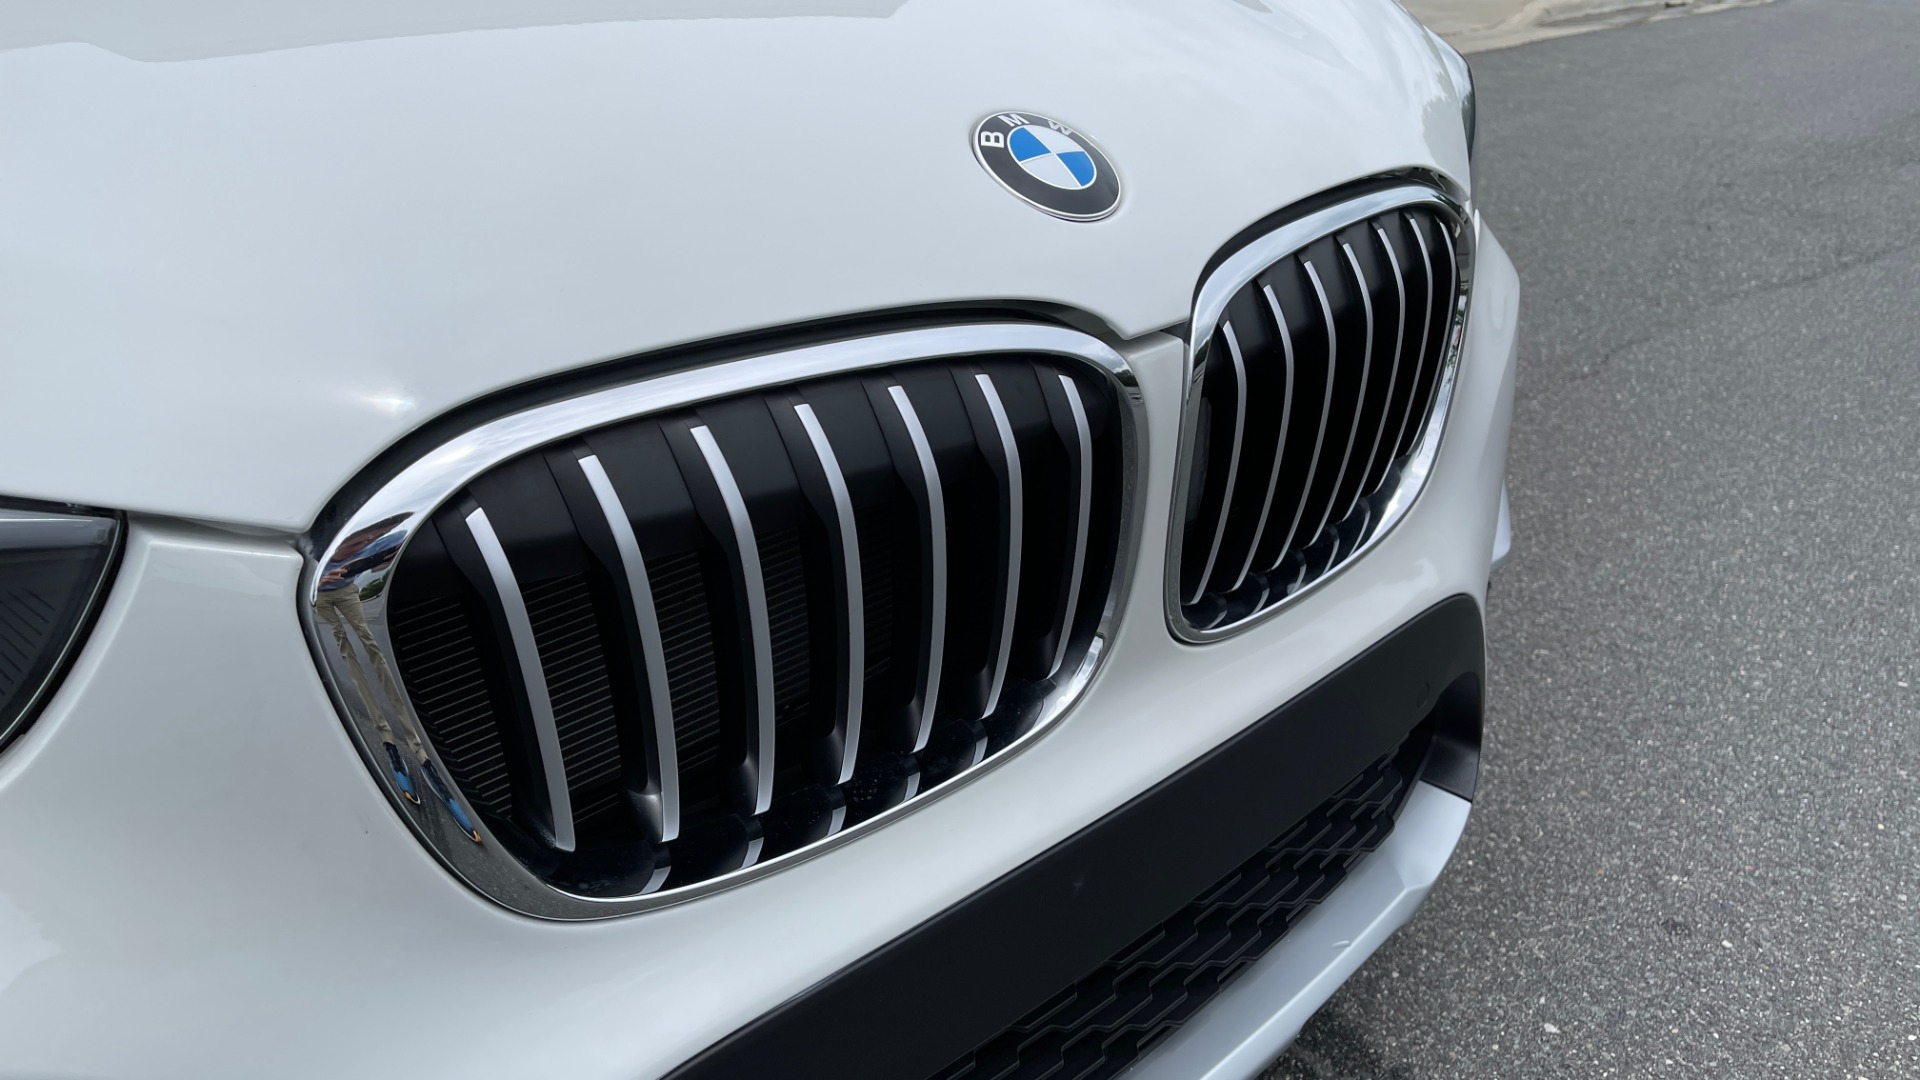 Used 2018 BMW X1 XDRIVE28I / CONV PKG / PANO-ROOF / HTD STS / PARK ASST / REARVIEW for sale $30,995 at Formula Imports in Charlotte NC 28227 18